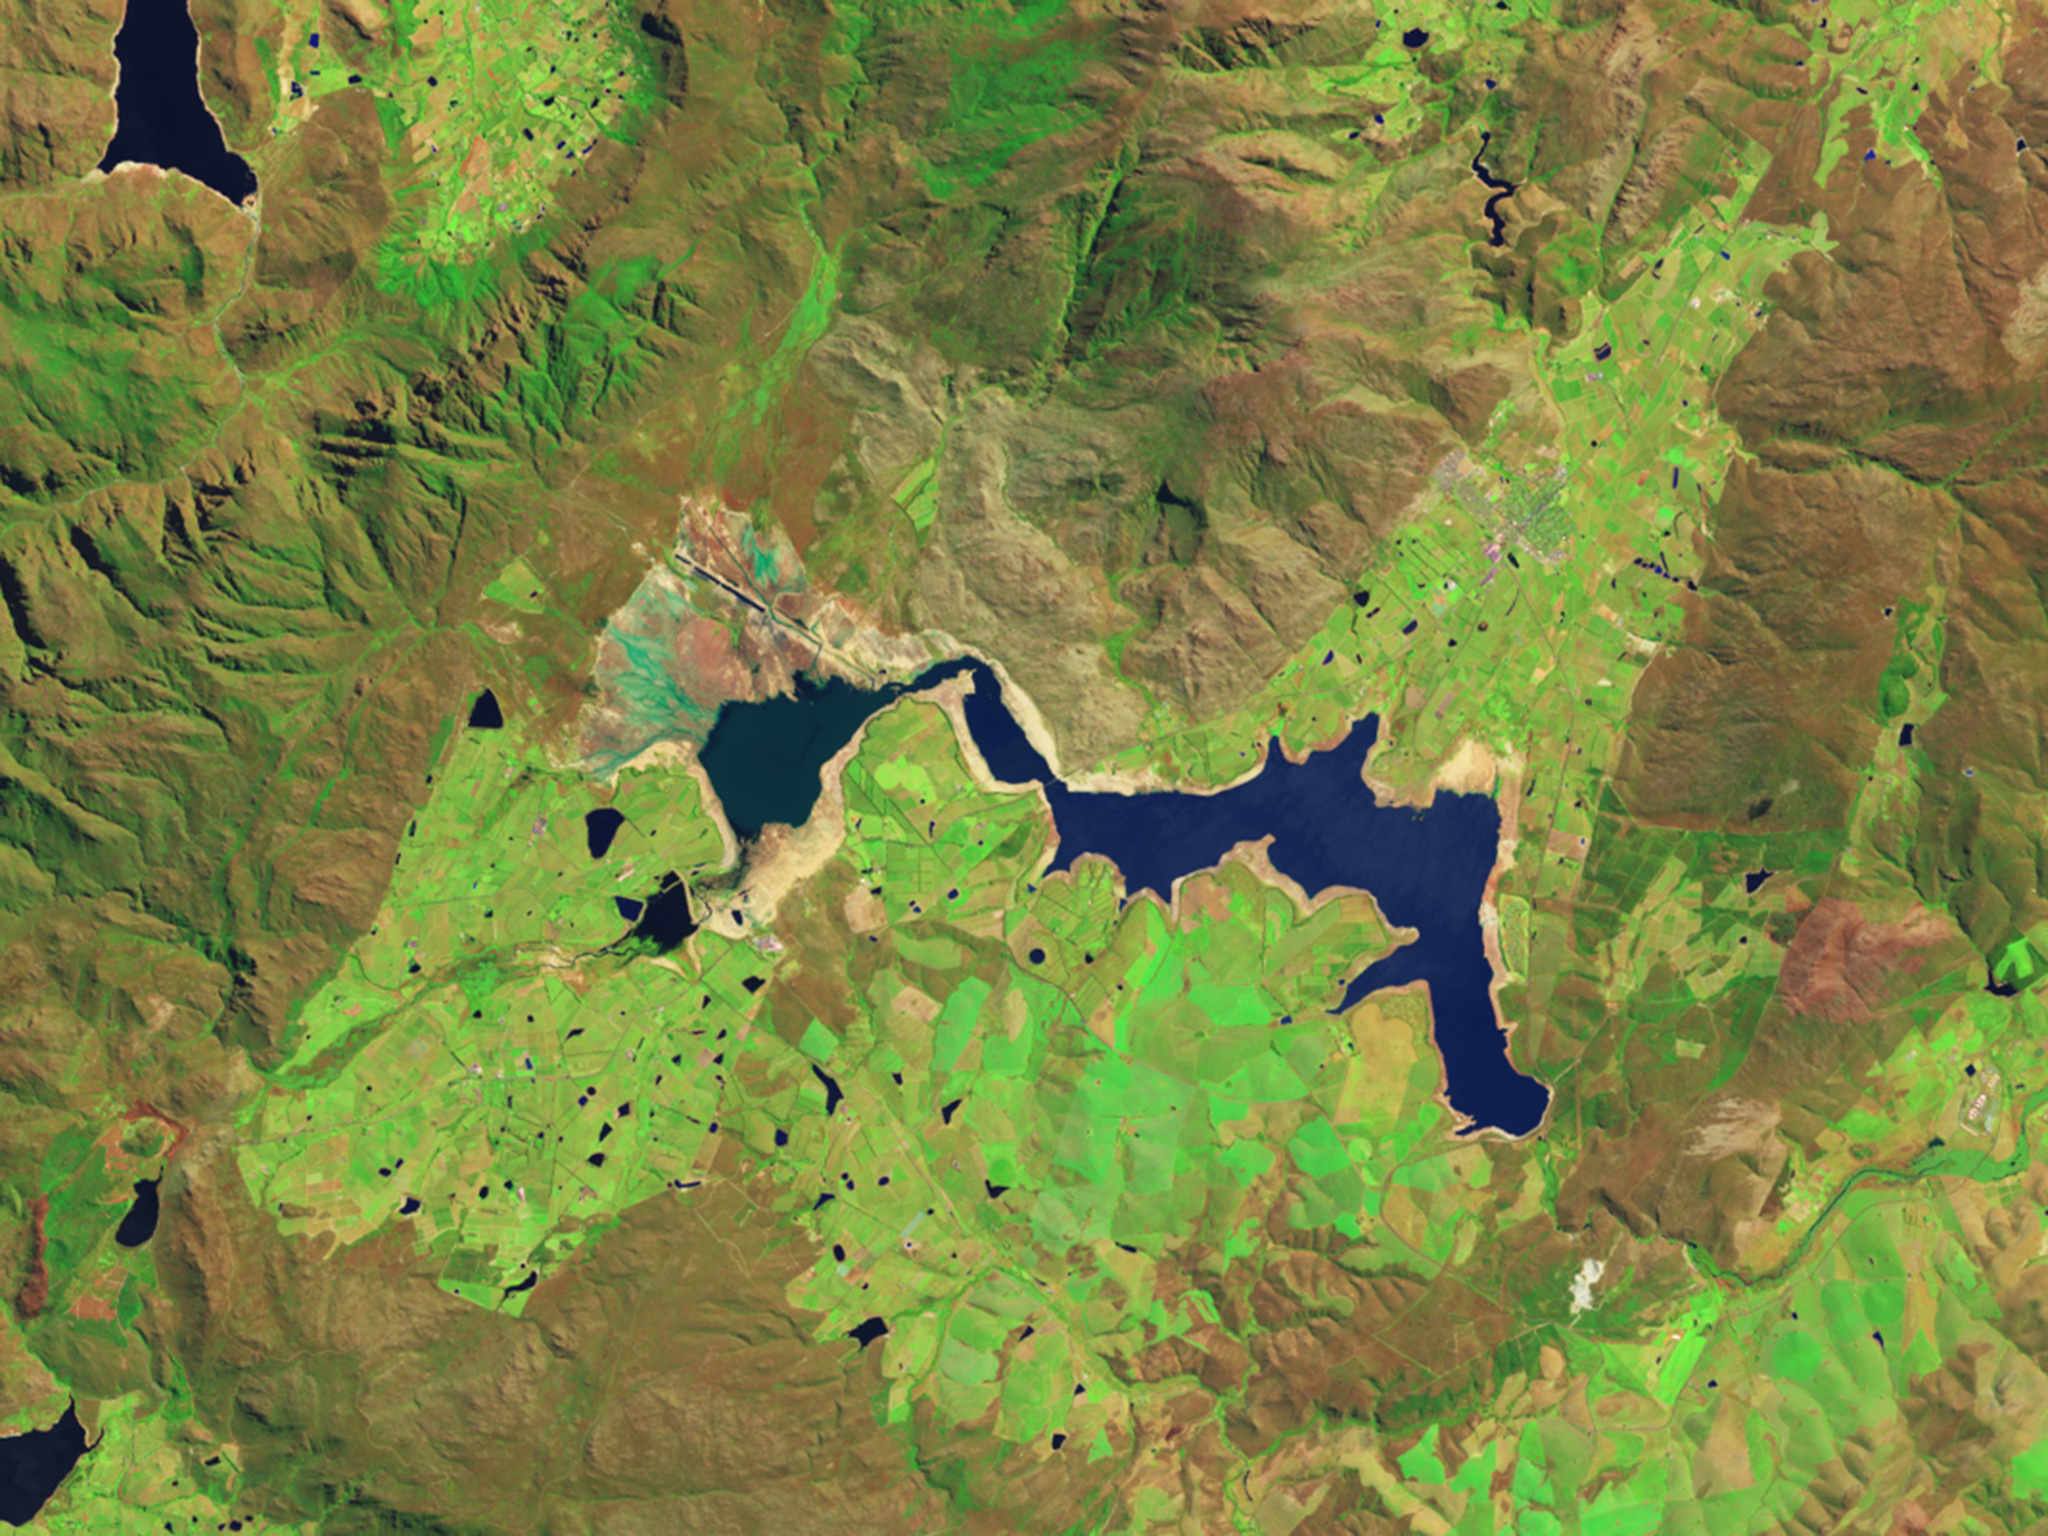 Climate Change Vital Signs Of The Planet Imagesofchange - Up to date satellite maps online